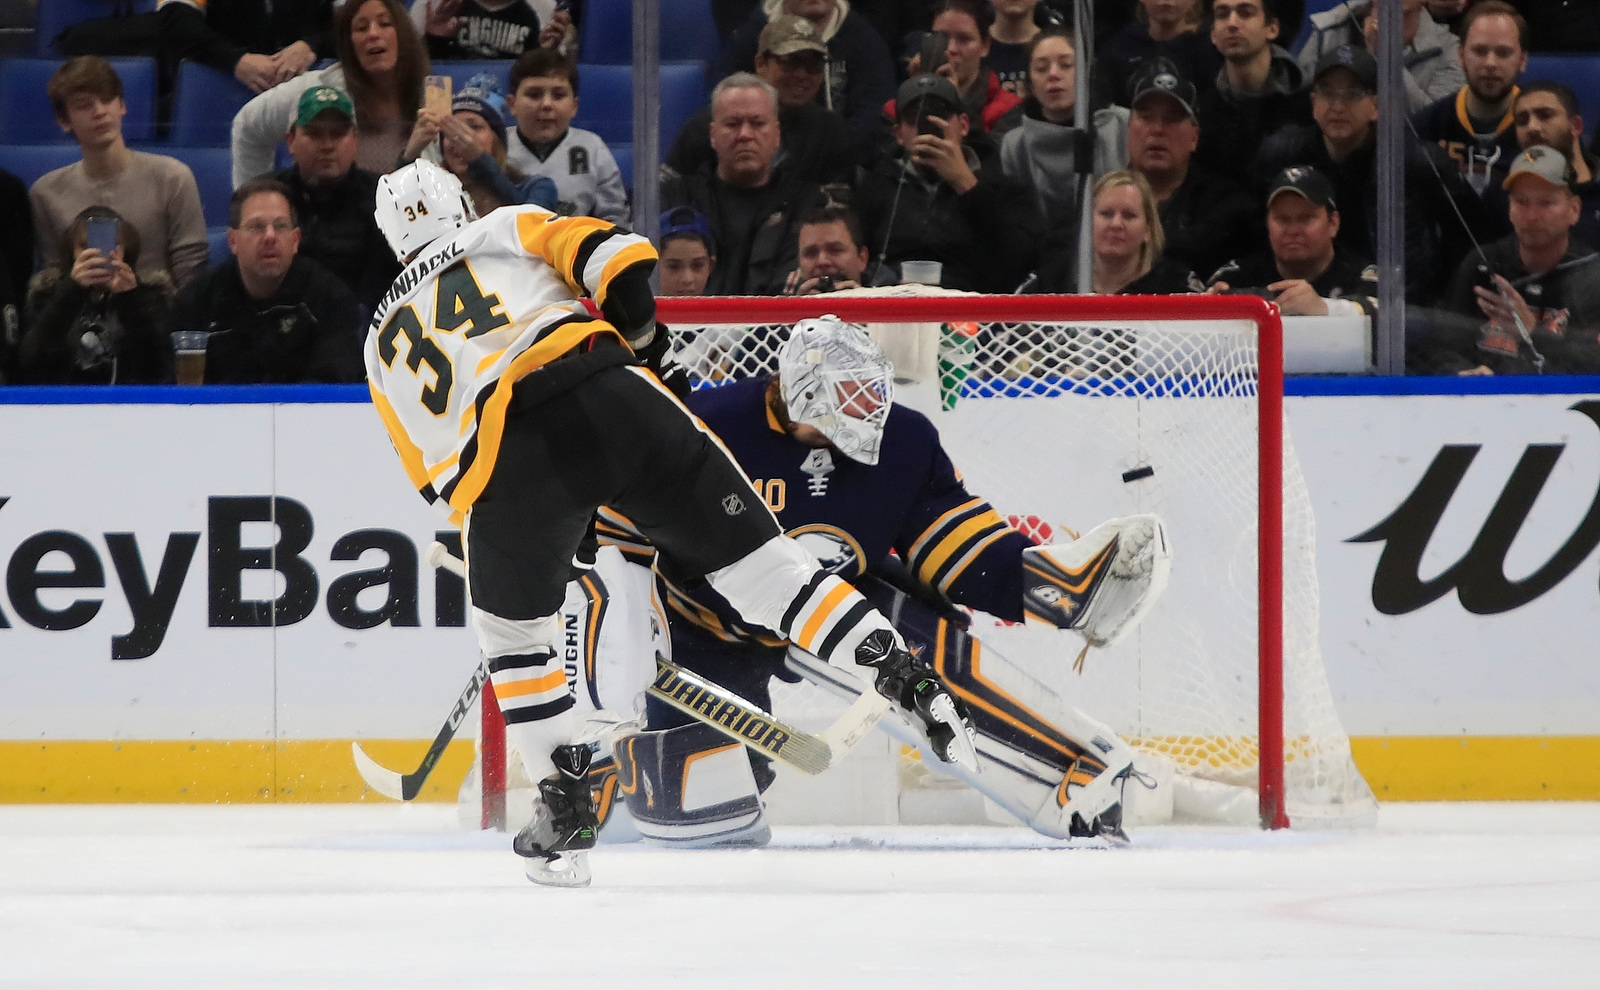 Buffalo Sabres goaltender Robin Lehner gets beat by Pittsburgh Penguins Tom Kuhnhackly on a penalty shot during first period action at the KeyBank Center on Friday, Dec. 1, 2017.